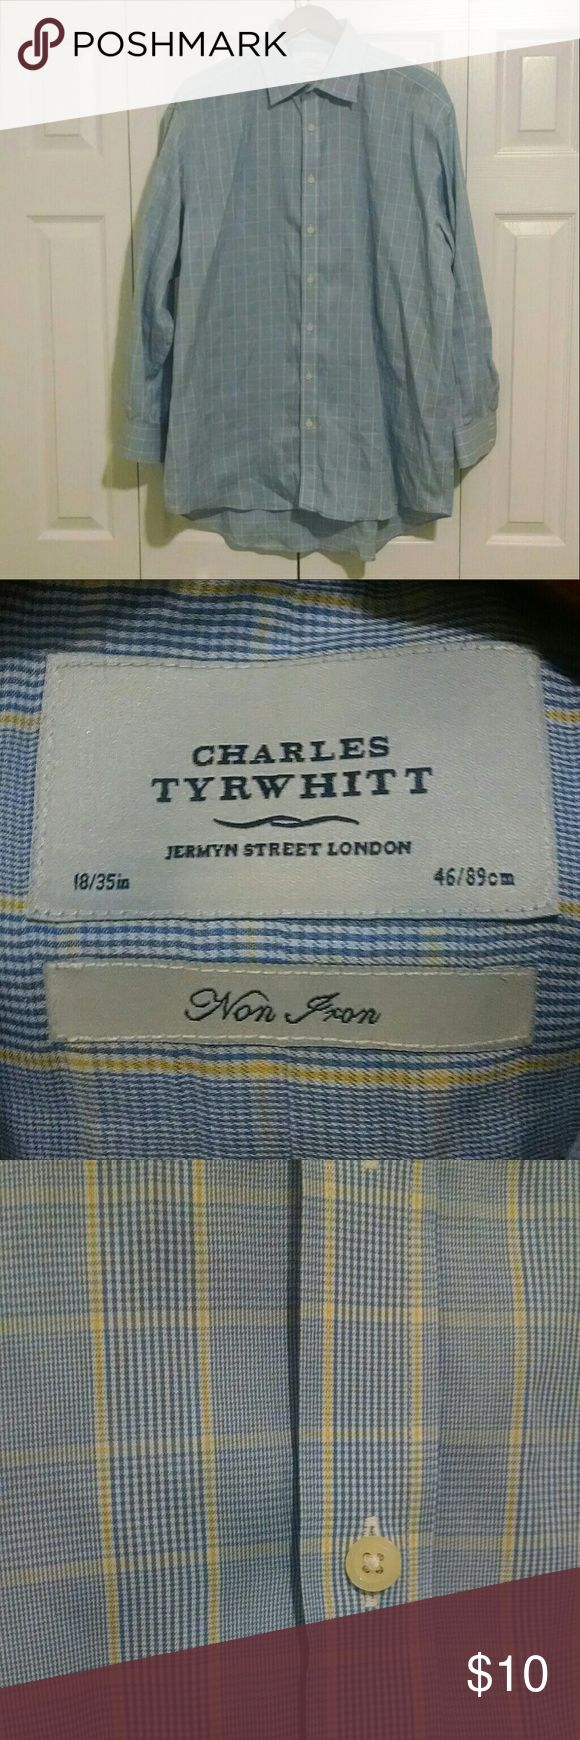 """Charles Tyrwhitt Non Iron Dress Shirt Excellent condition!  18"""" collar, 35"""" sleeve.  Bundle and save! Charles Tyrwhitt Shirts Dress Shirts"""